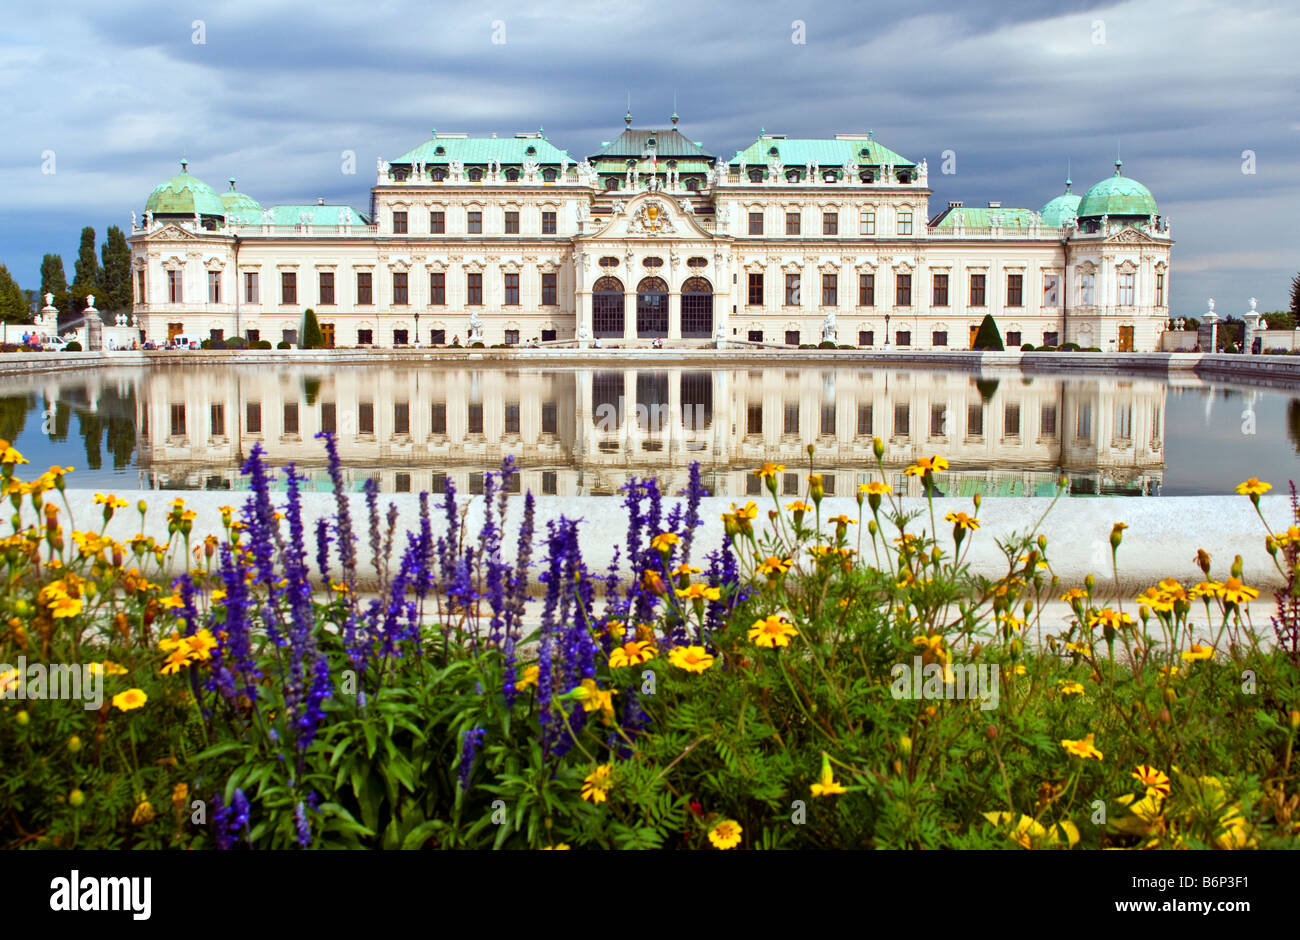 Vienna's Belvedere Palace, Baroque architecture, built by Prince Eugene of Savoy - Stock Image